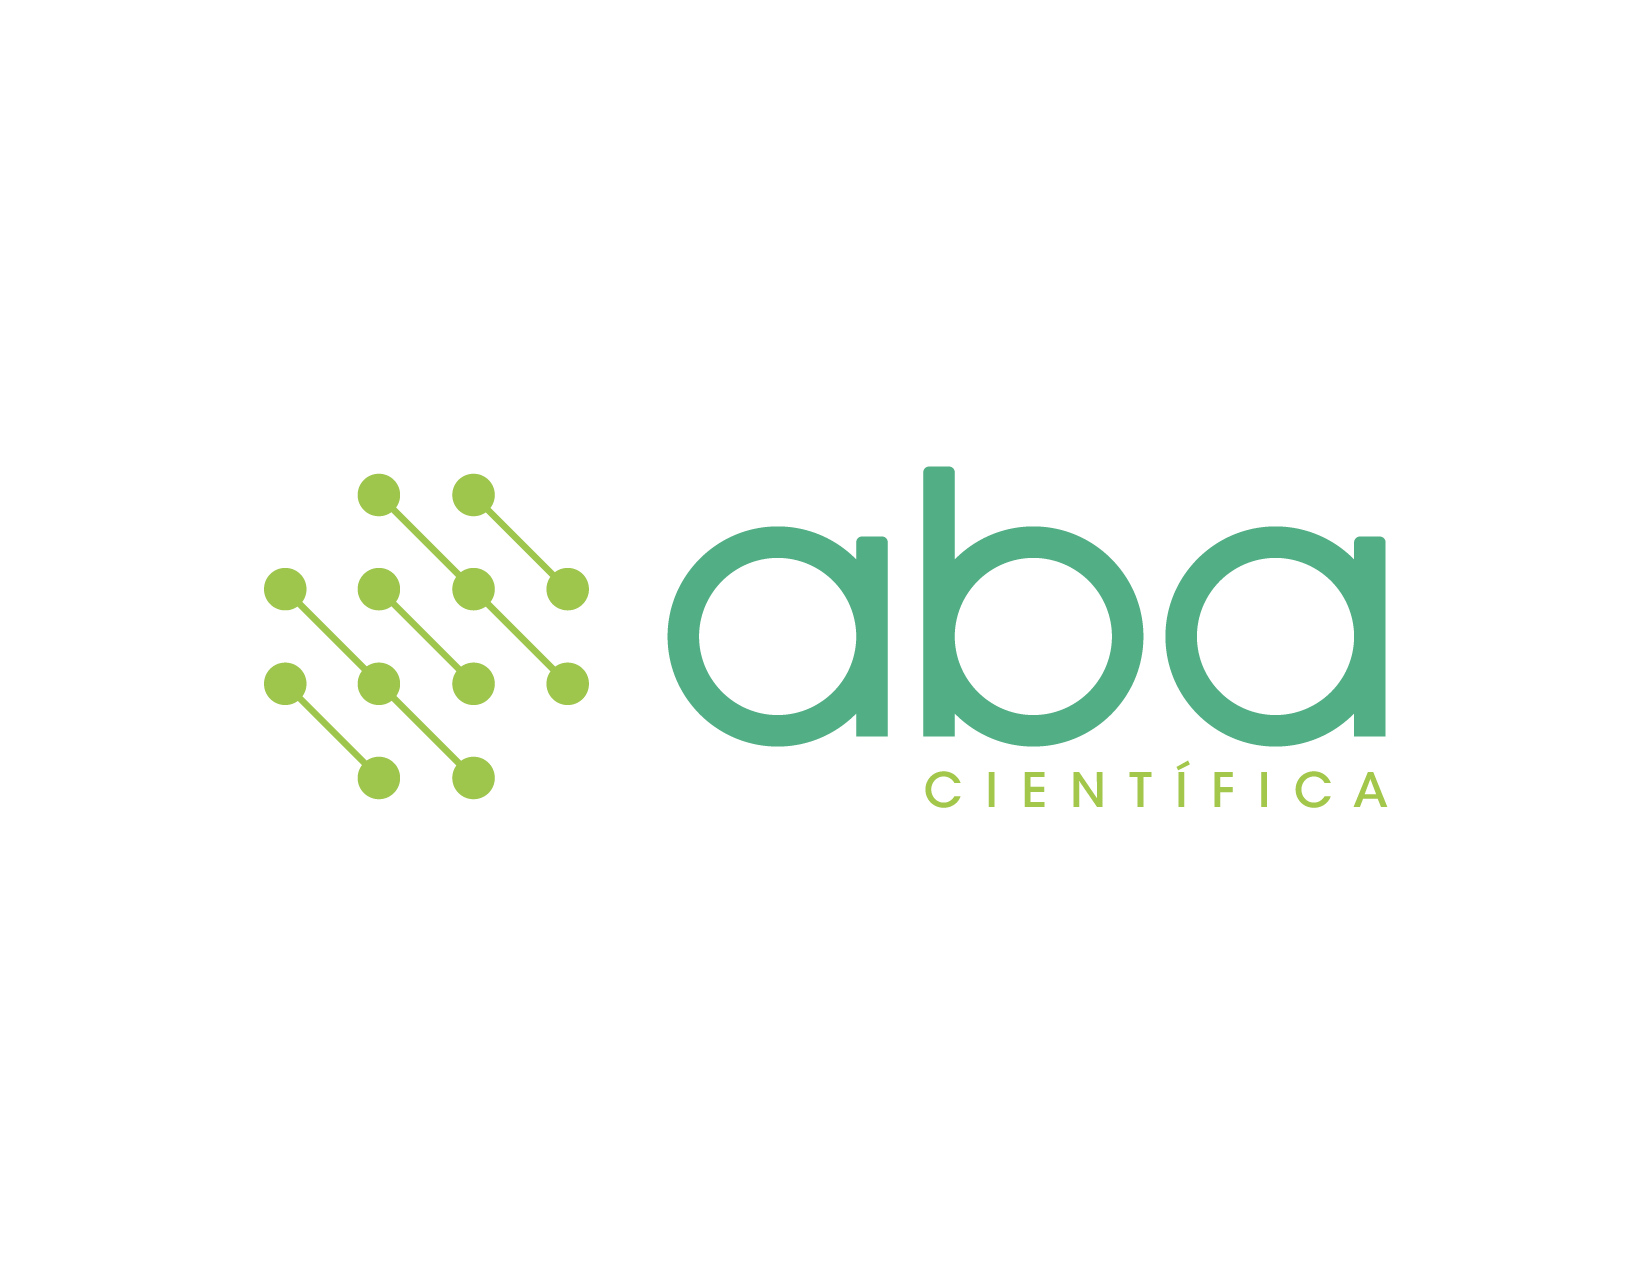 Image colombia Comercial Allies Colombia logo aba